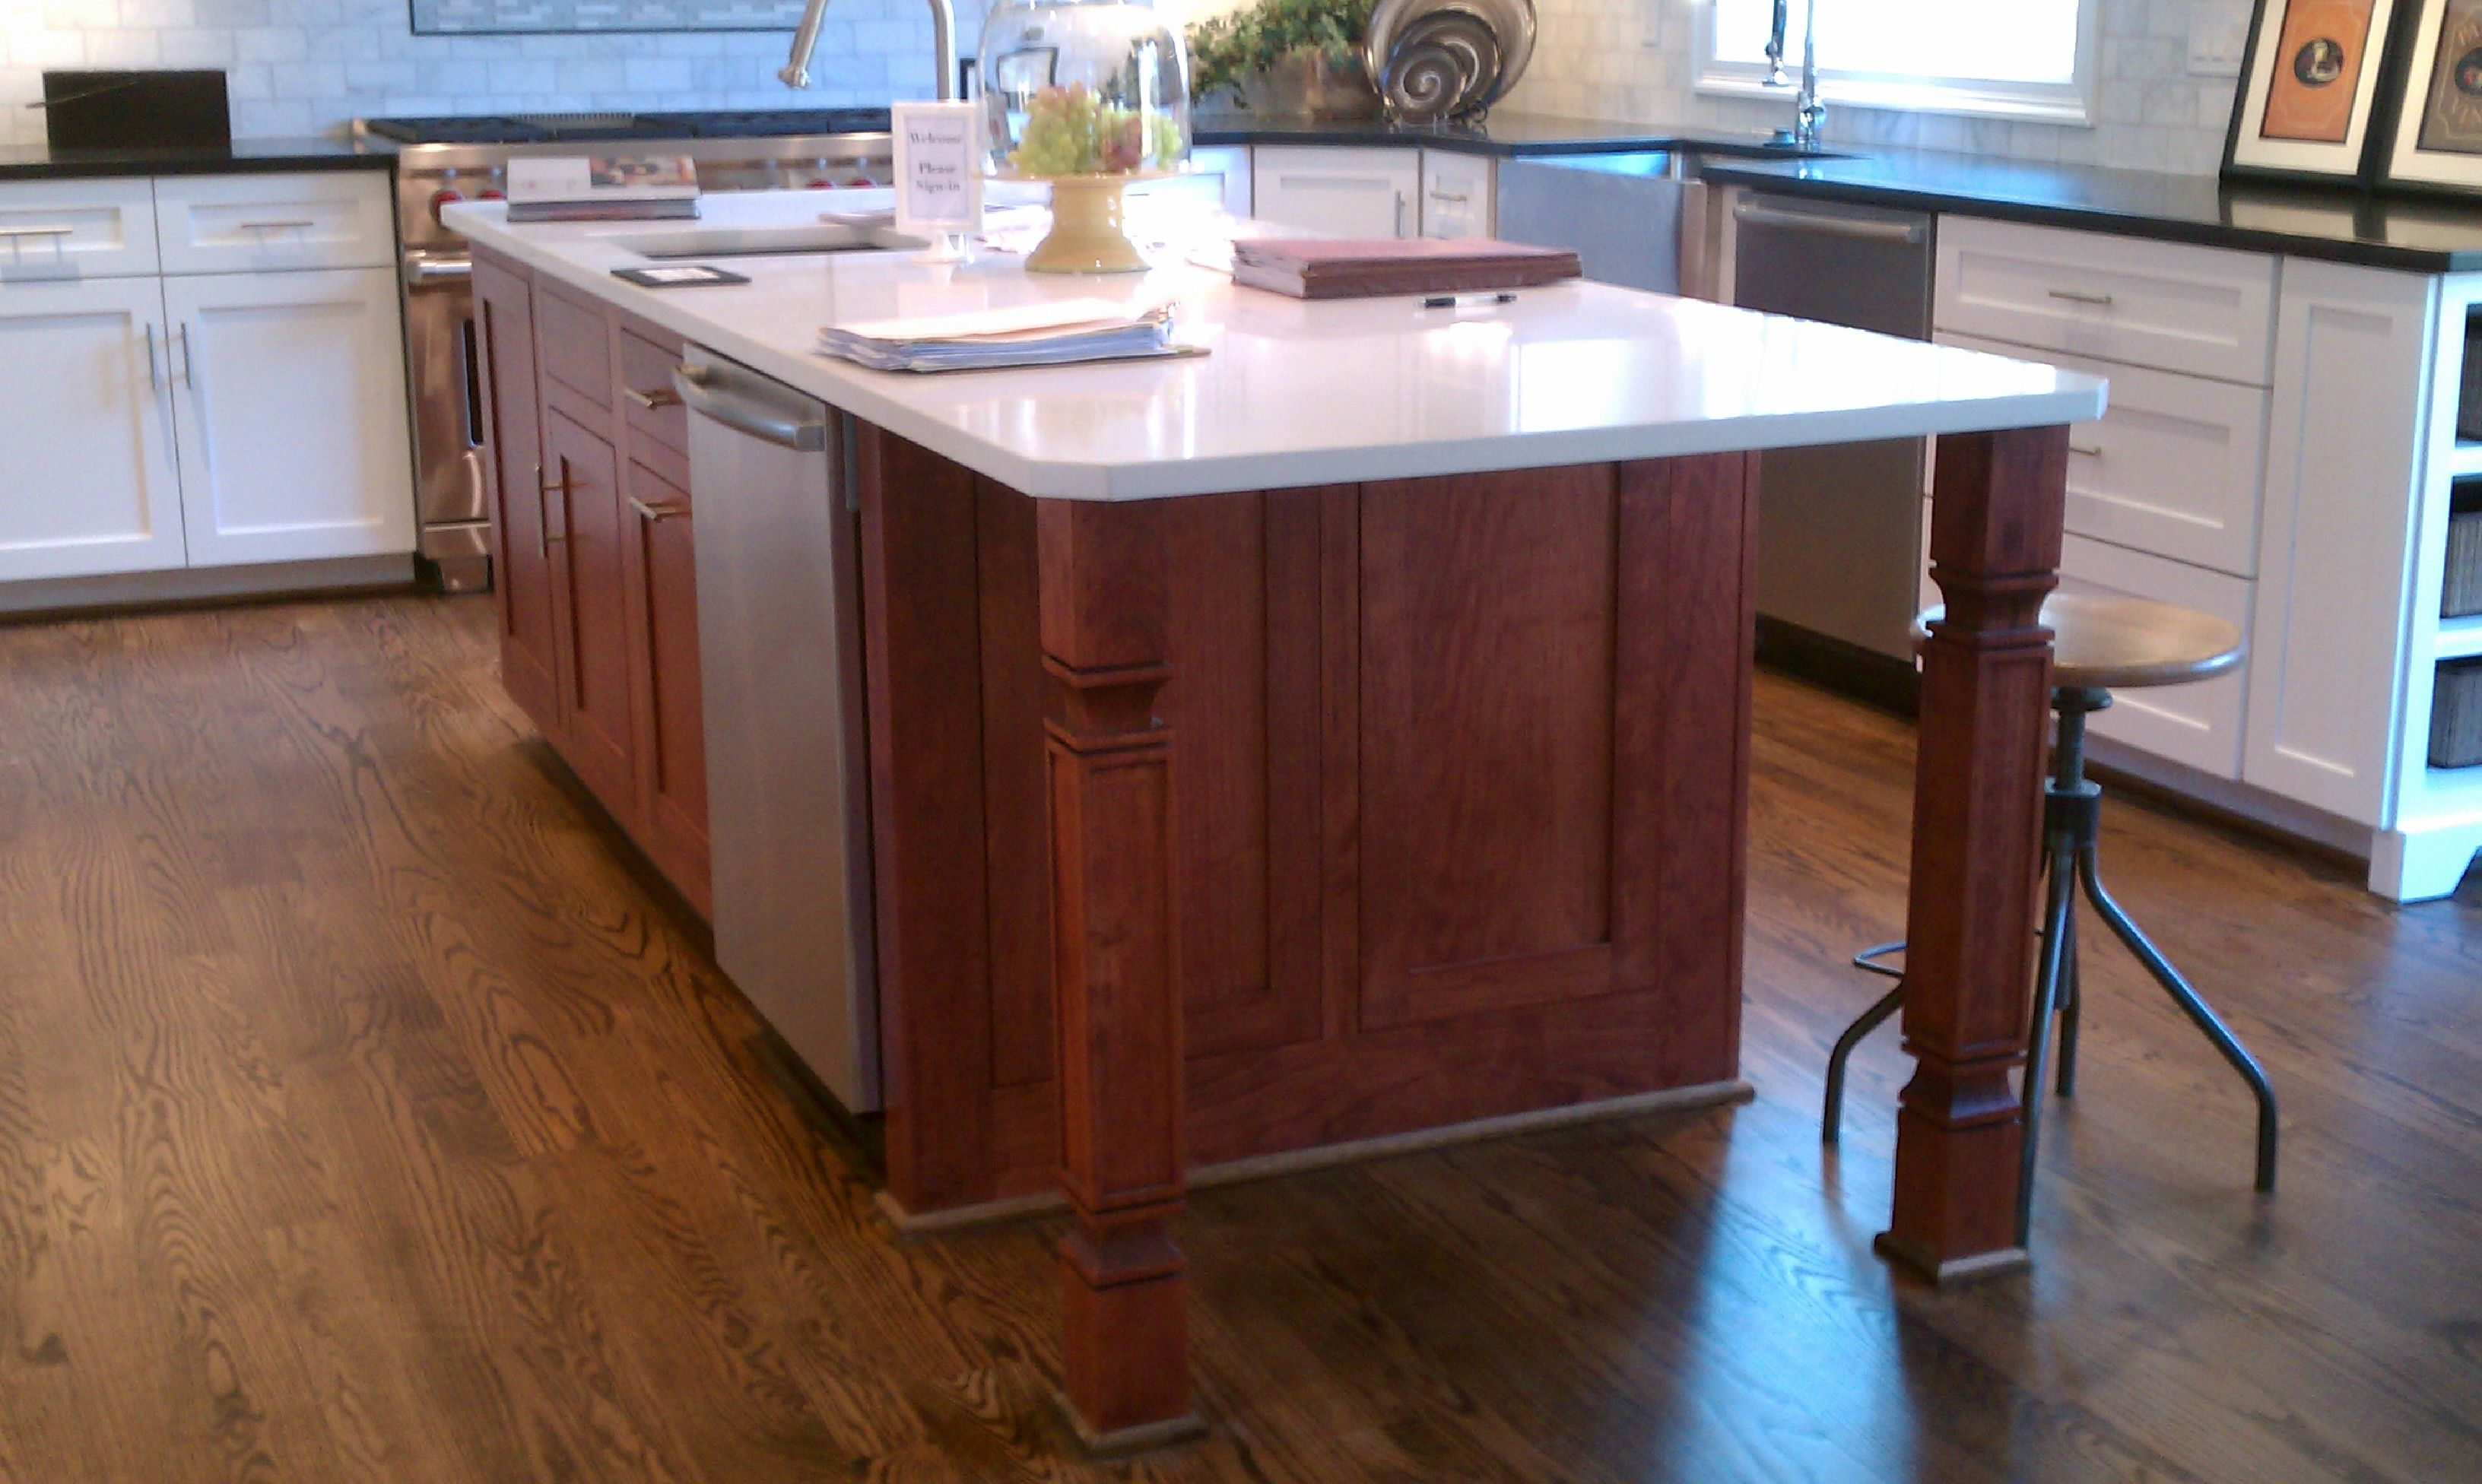 Custom Cabinetry Hagerstown Kitchens Remodeling Cabinets Hagerstown Md Kitchen Cabinet Remodel Simple Kitchen Remodel Kitchen Remodel